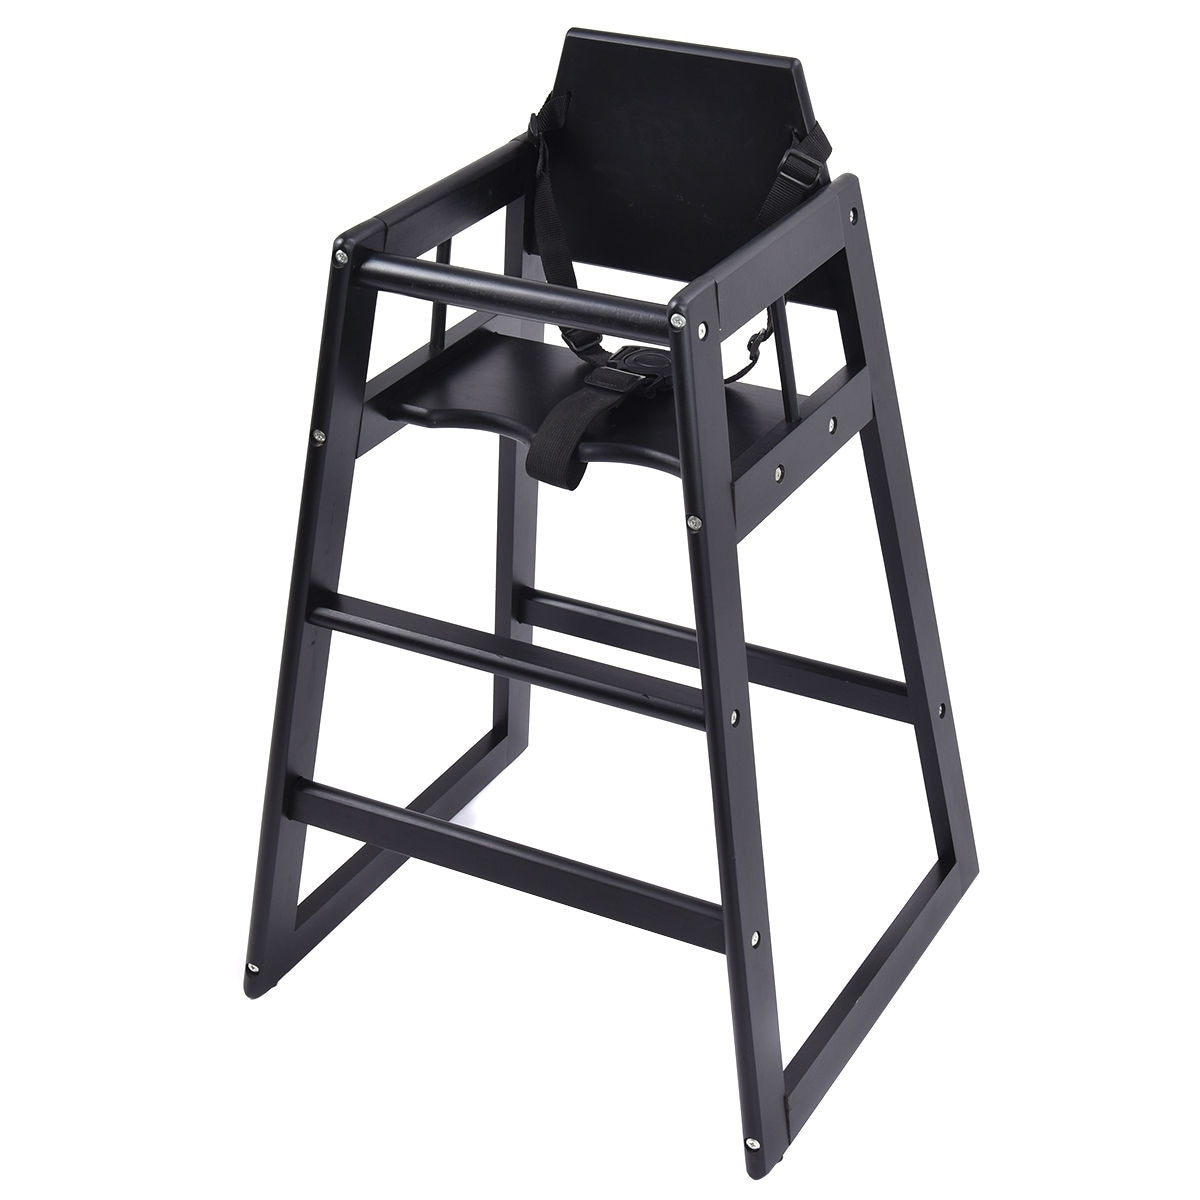 high chair restaurant covers hire kent shop costway baby wooden stool infant feeding children toddler natural bk black